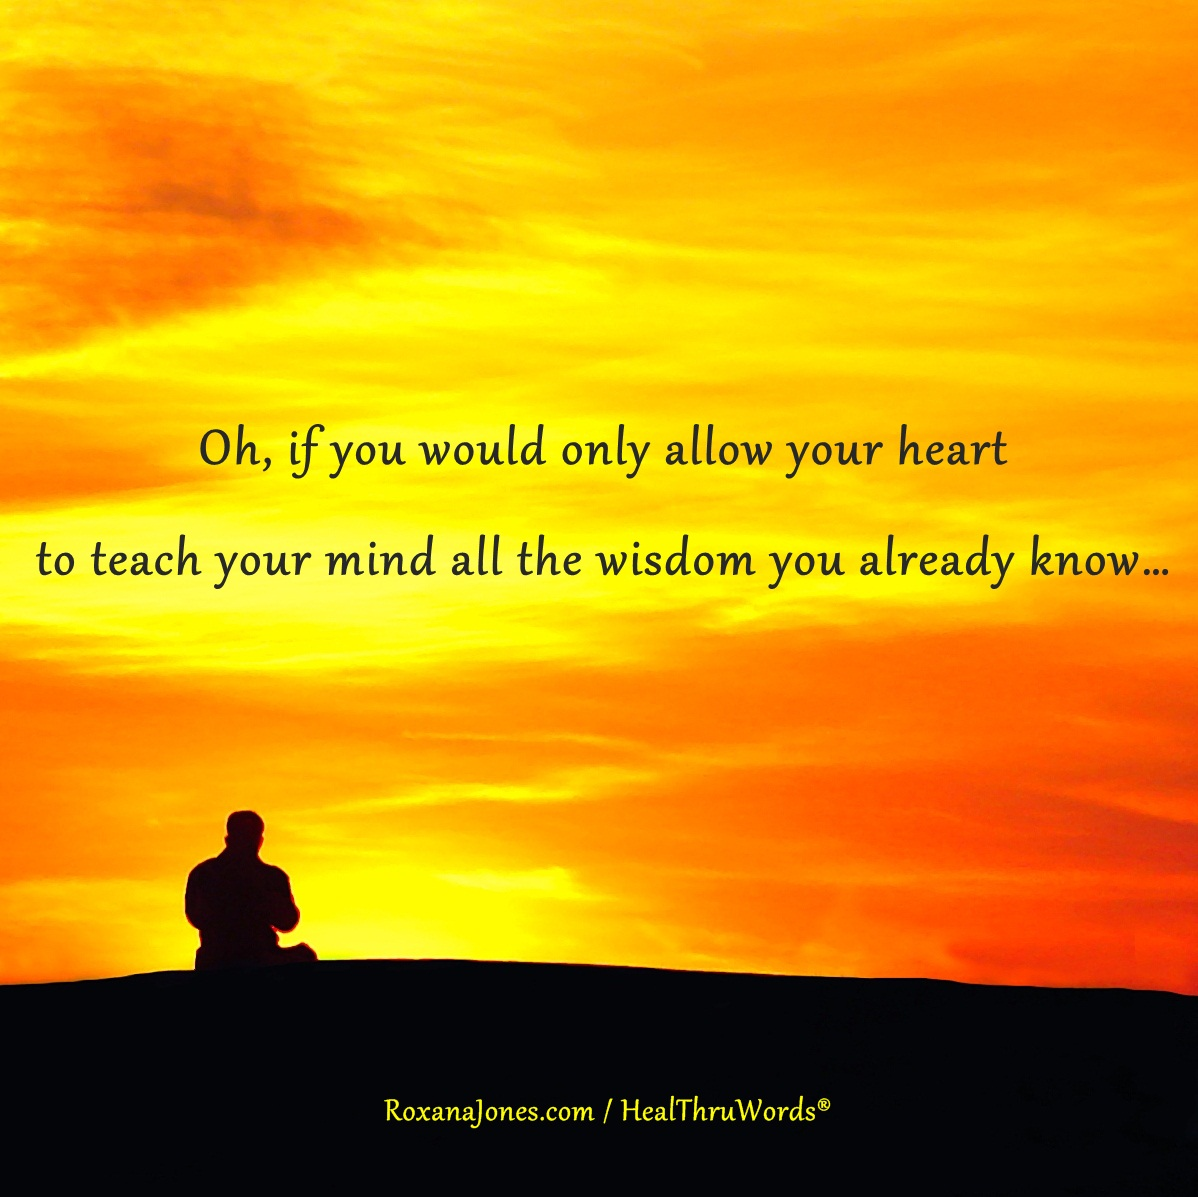 Wisdom Quotes Inspirational: For The Heart Quotes Wisdom. QuotesGram